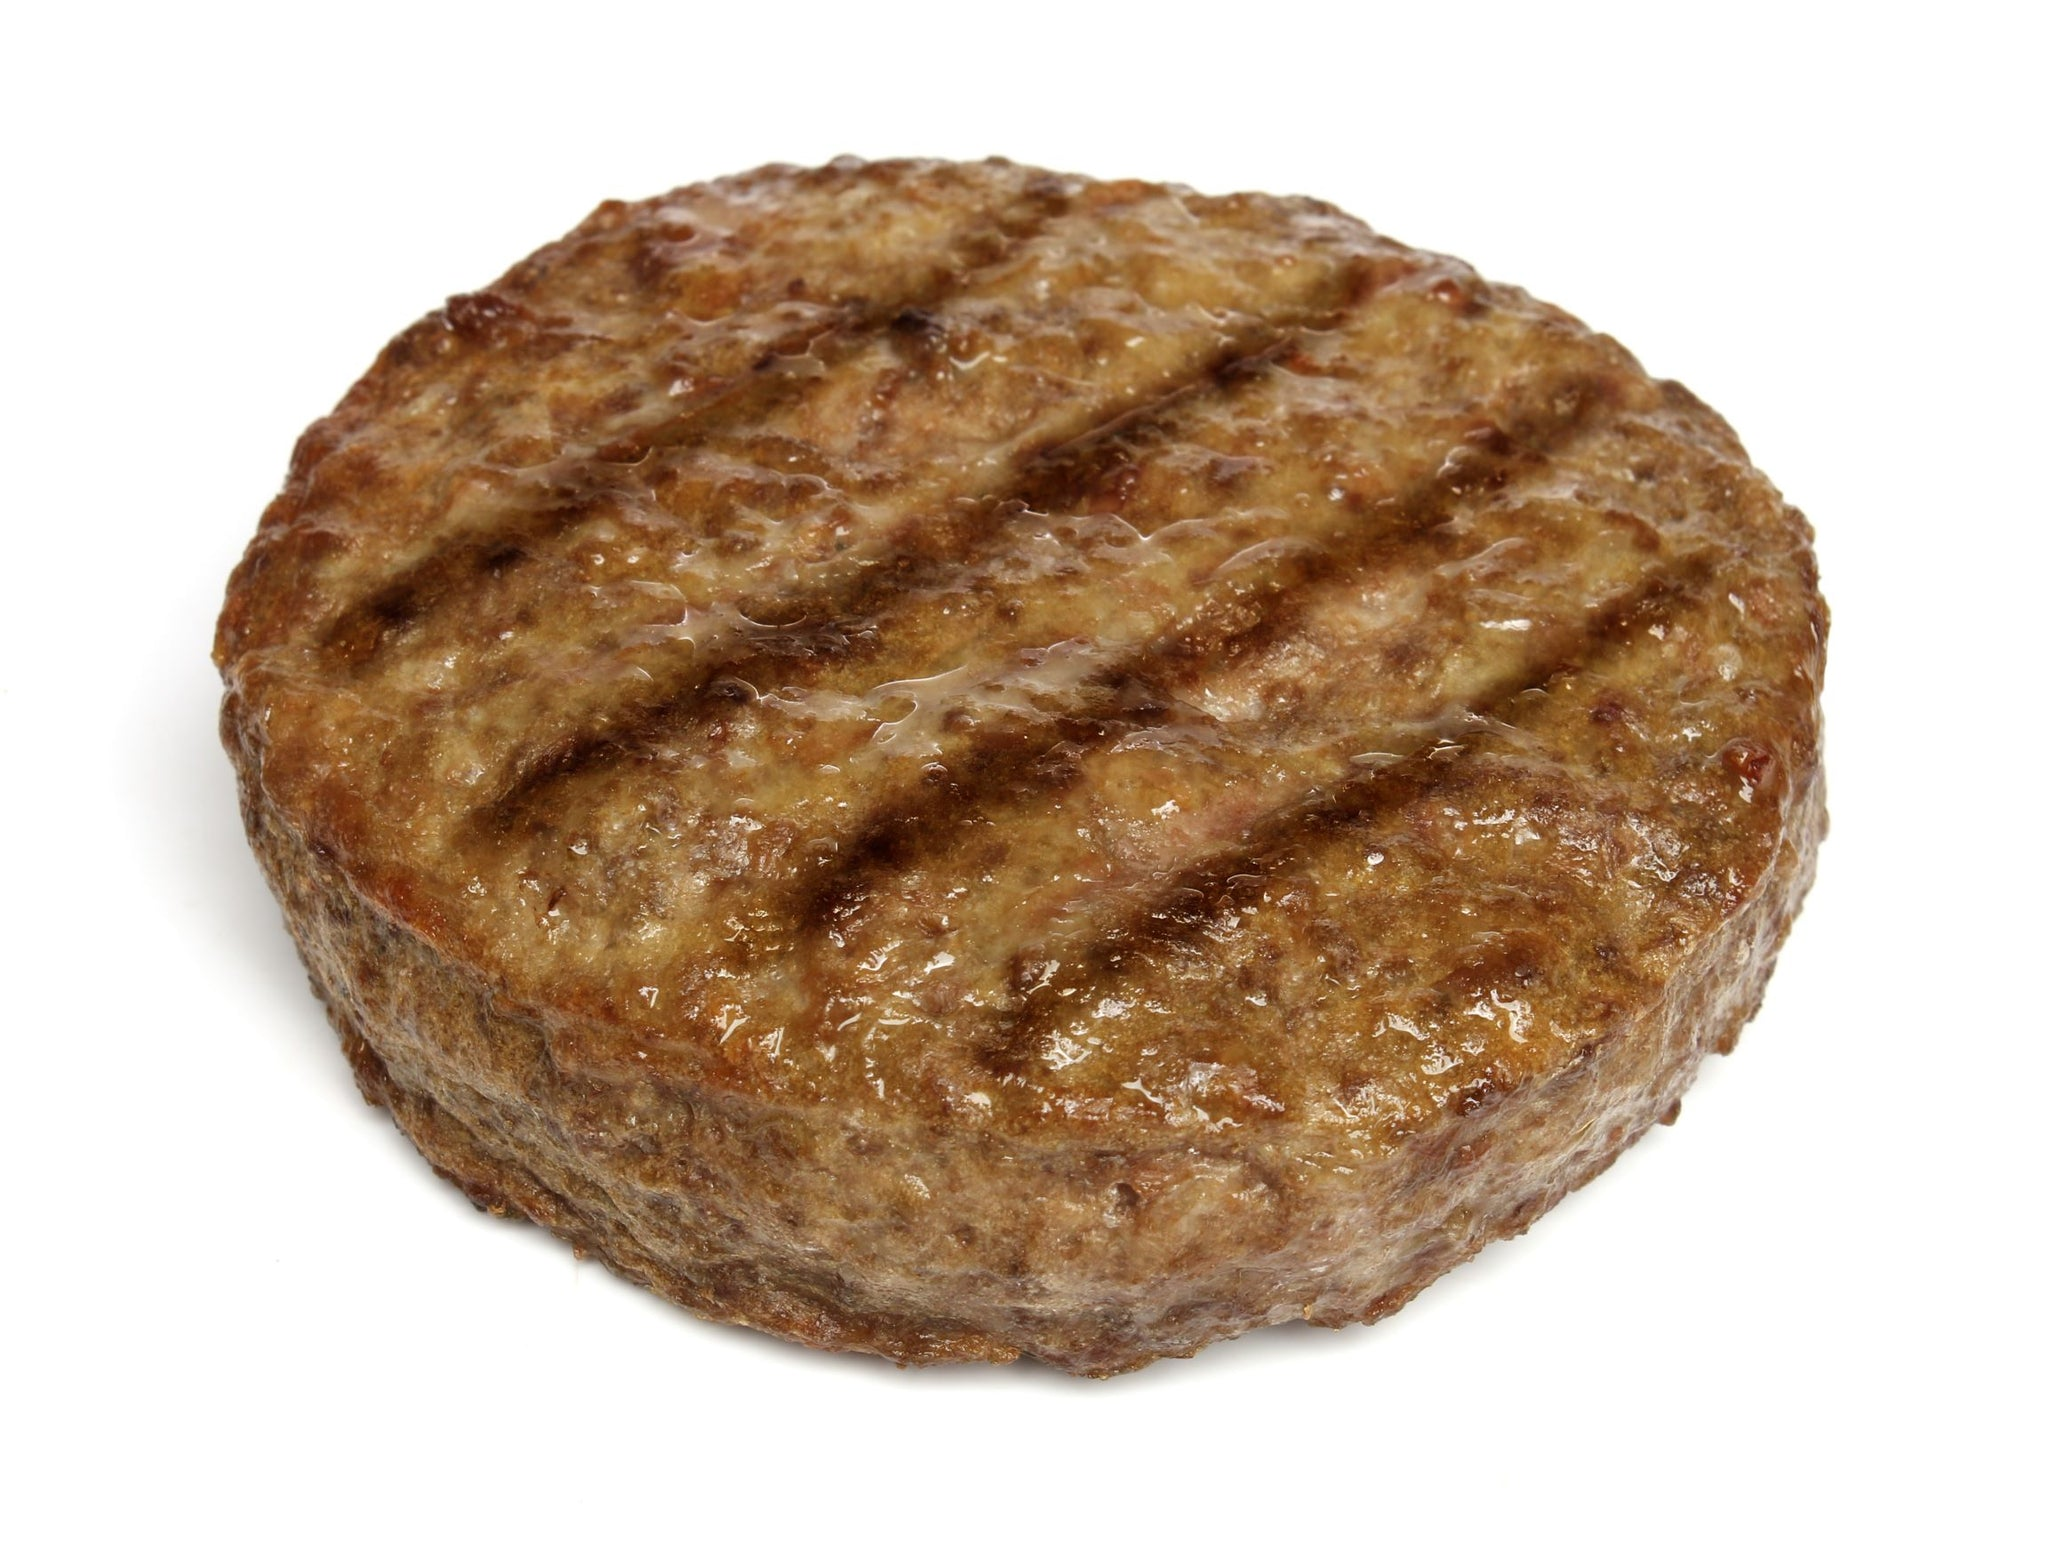 Fire River Farms Frozen Homestyle Beef Burger 5.3 oz - 60 Pack [$1.65/each]